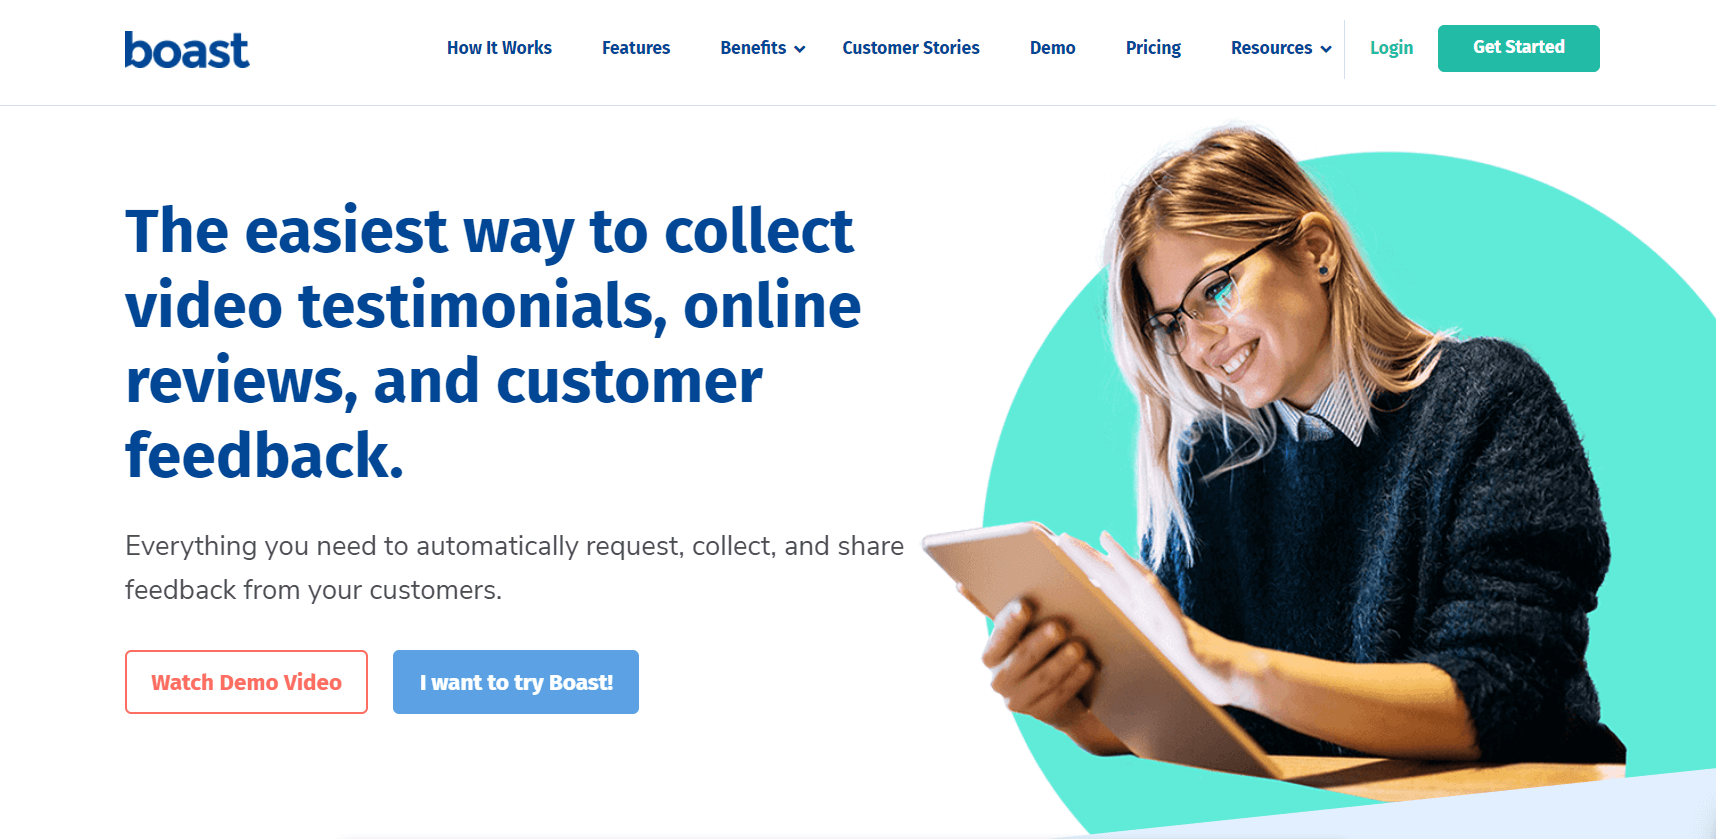 Boast.io: The easiest way to collect video testimonials, online reviews, and customer feedback. Everything you need to automatically request, collect, and share feedback from your customers.